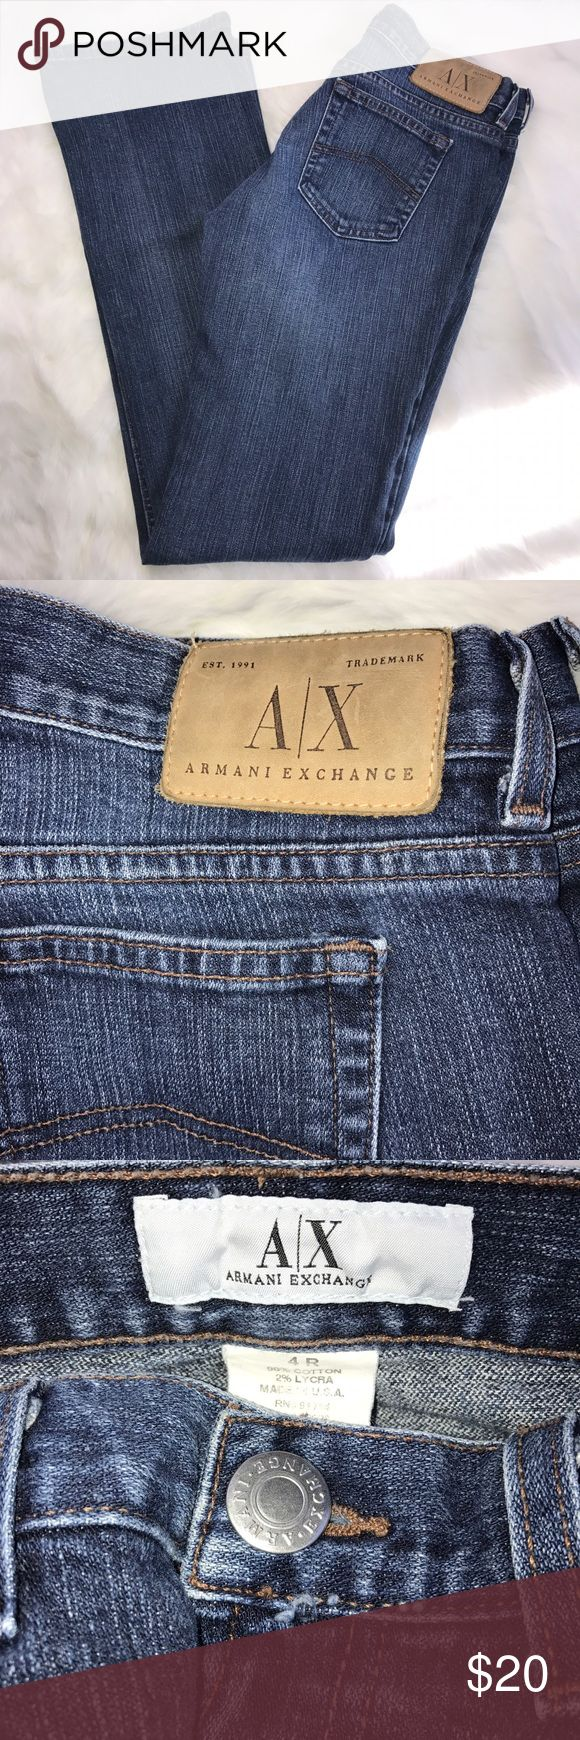 """Armani Exchange Jeans Size 4 Armani Exchange Jeans Size 4 with a 32"""" inseam. Great condition. Boot cut. Ready to wear for the weekend! Armani Exchange Jeans Boot Cut"""